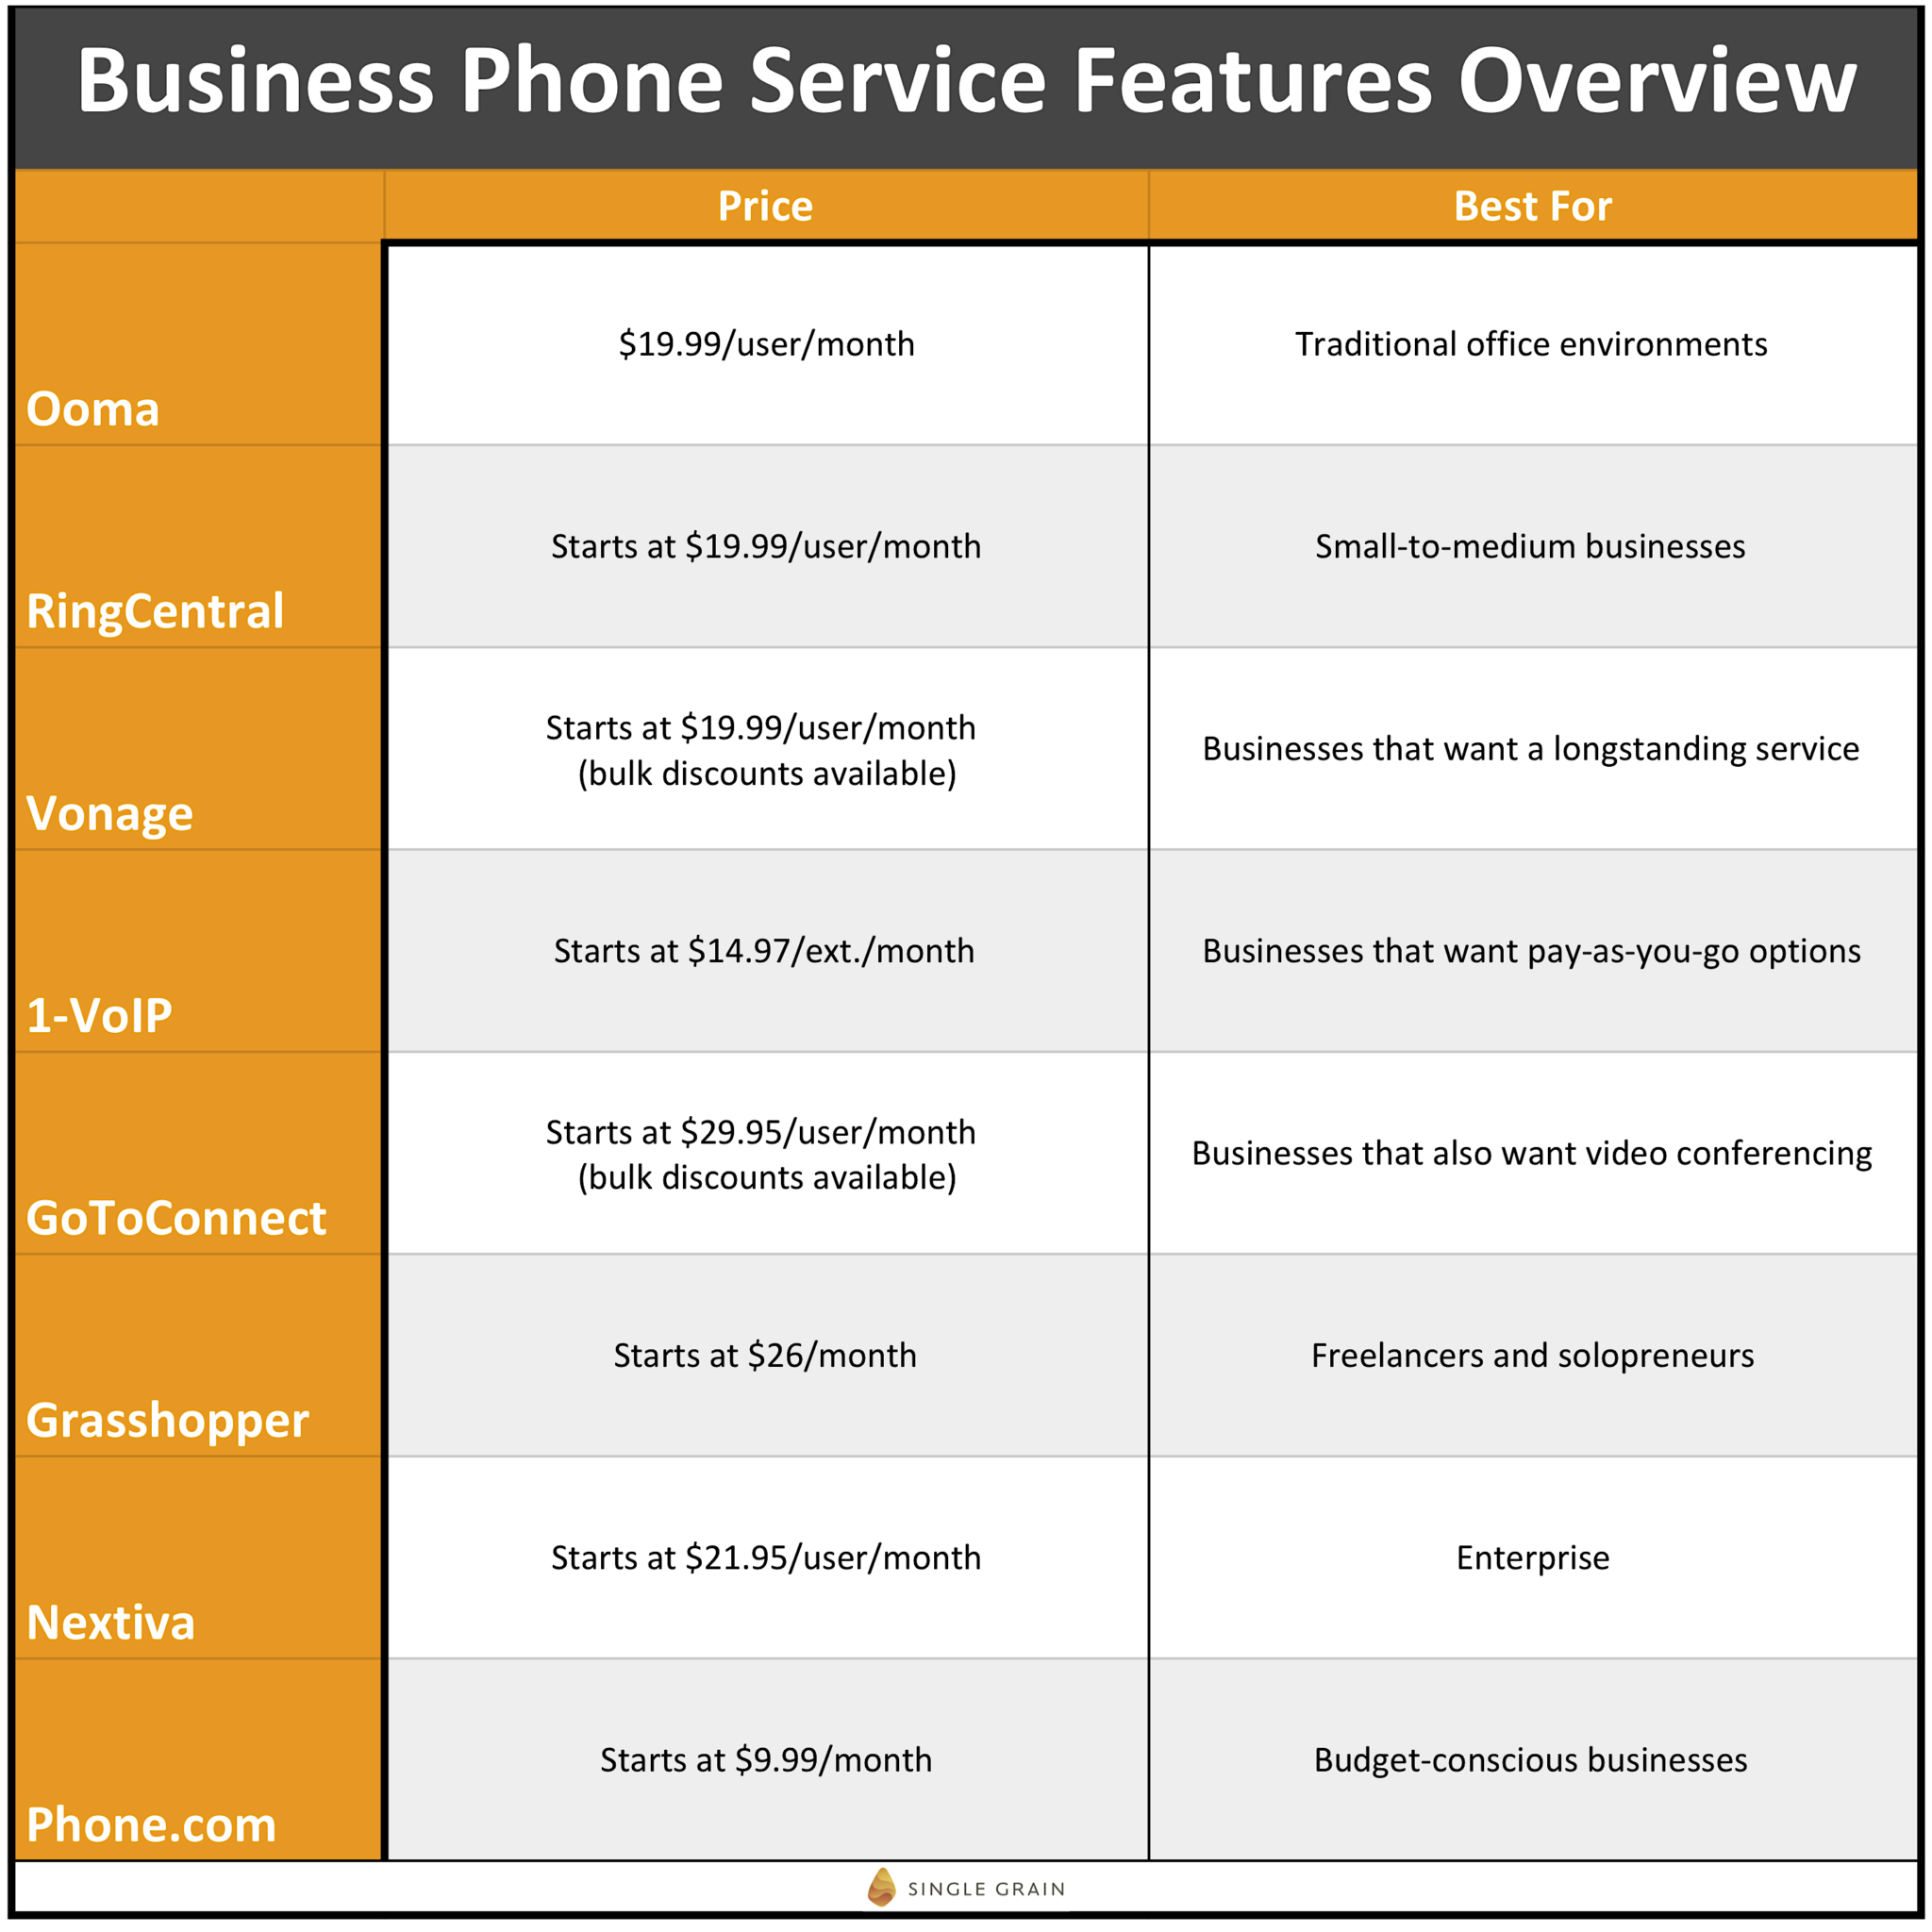 Business Phone Service Features Overview